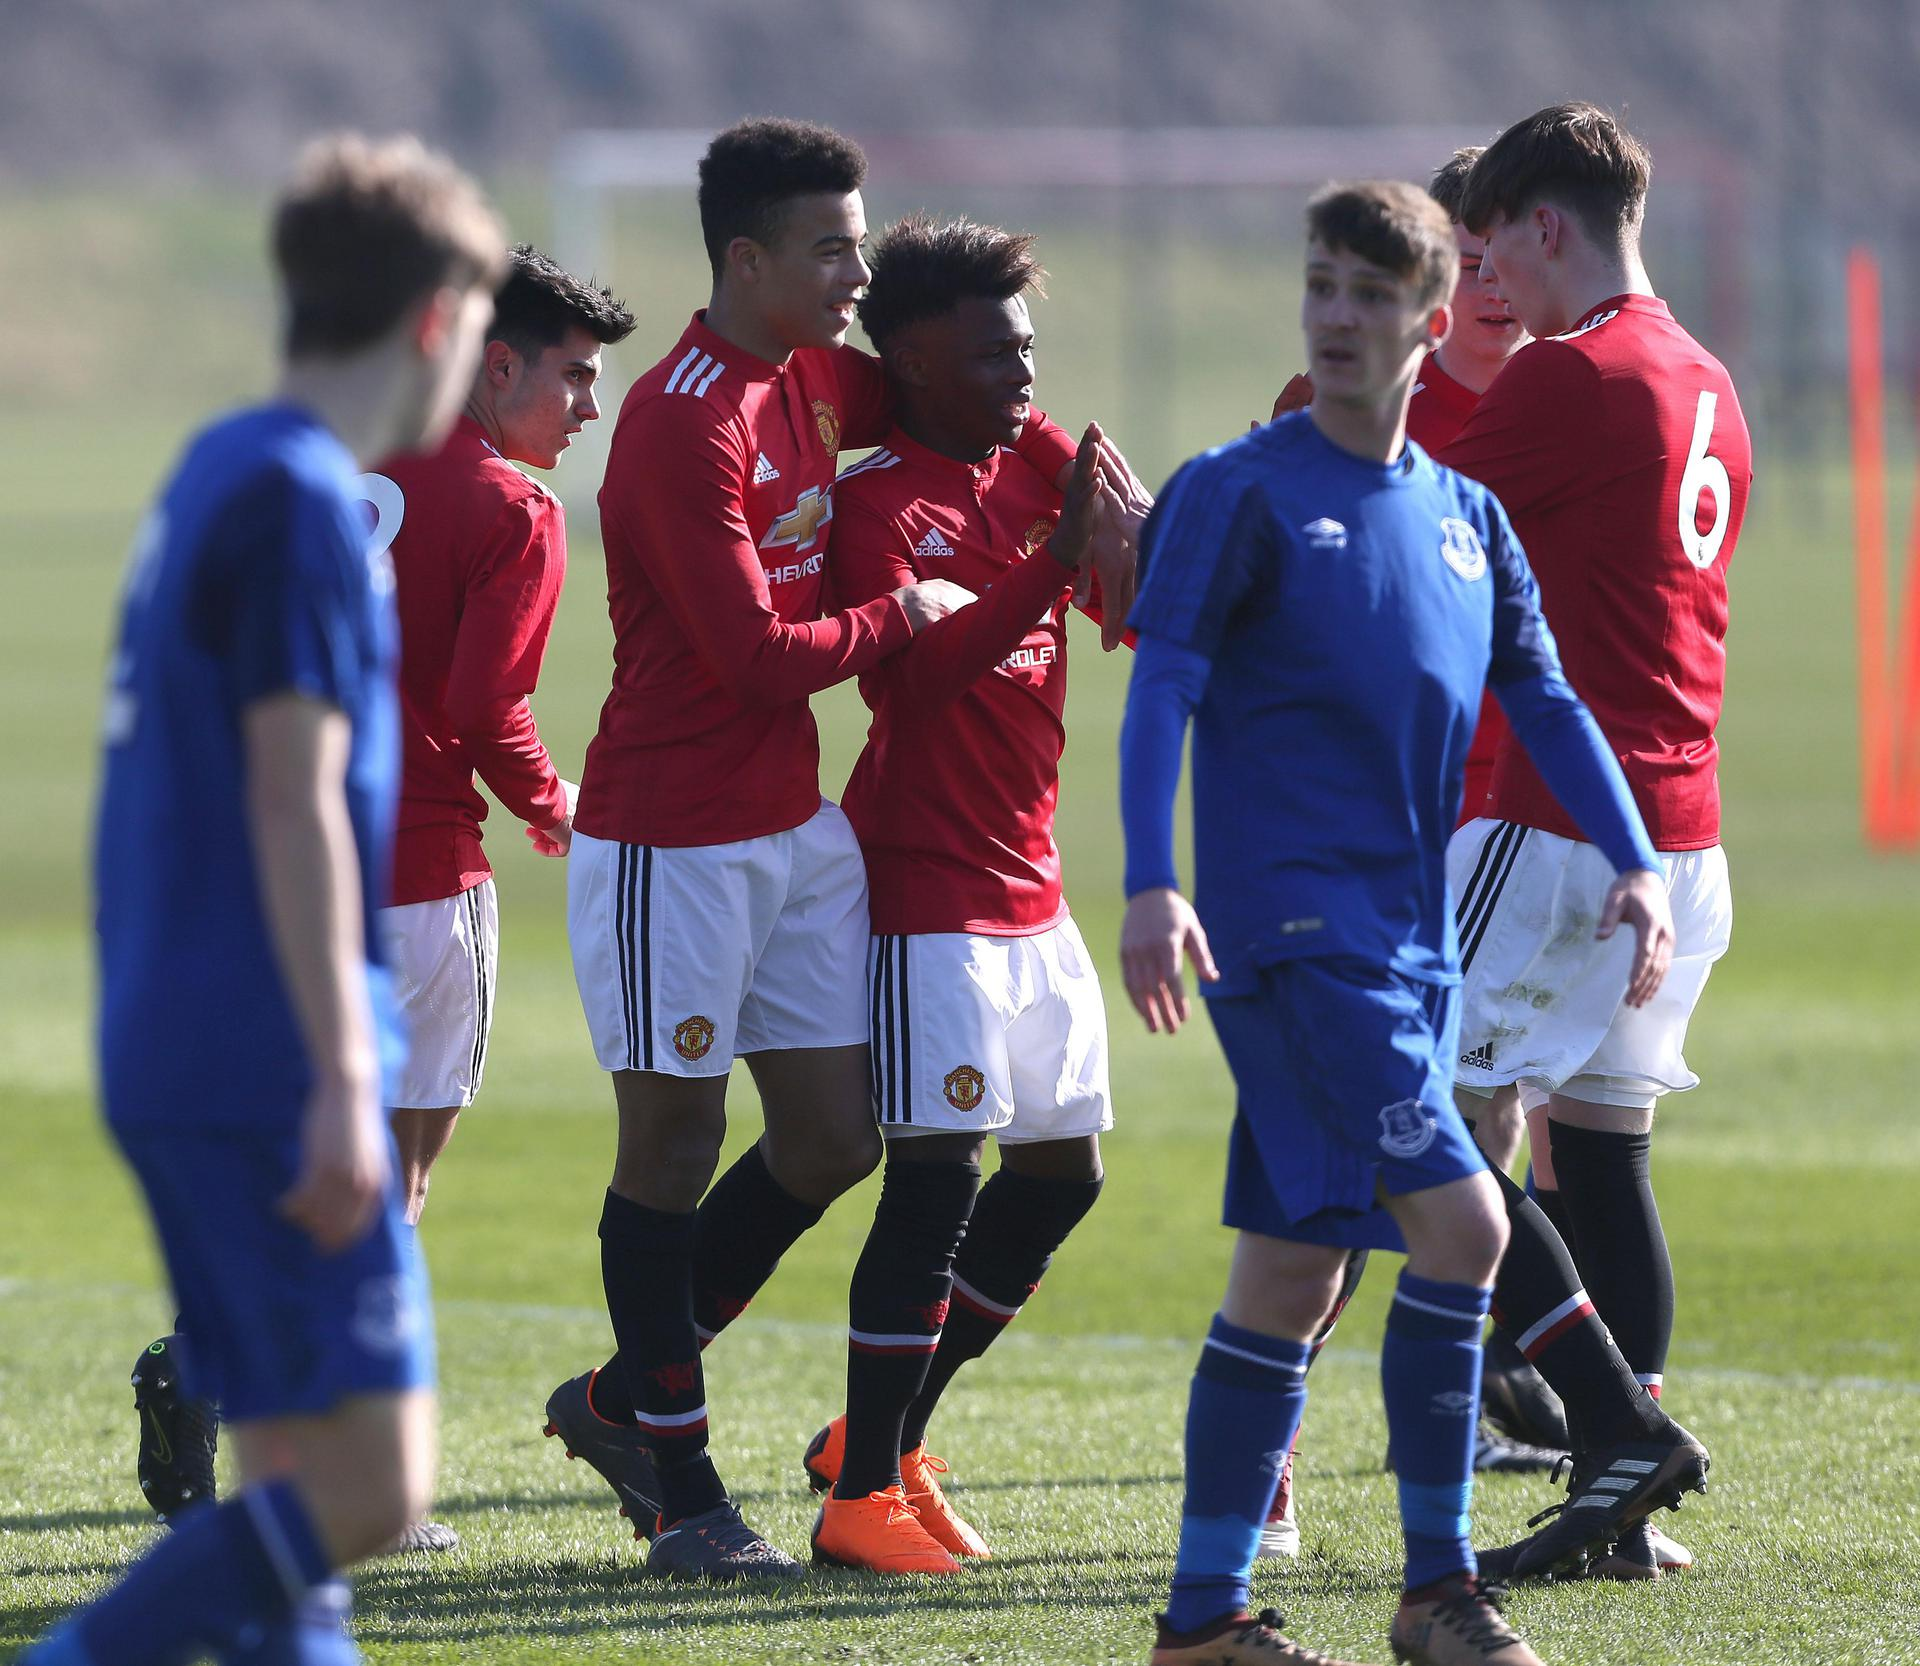 United Under-18s celebrate a goal against Everton in February 2018